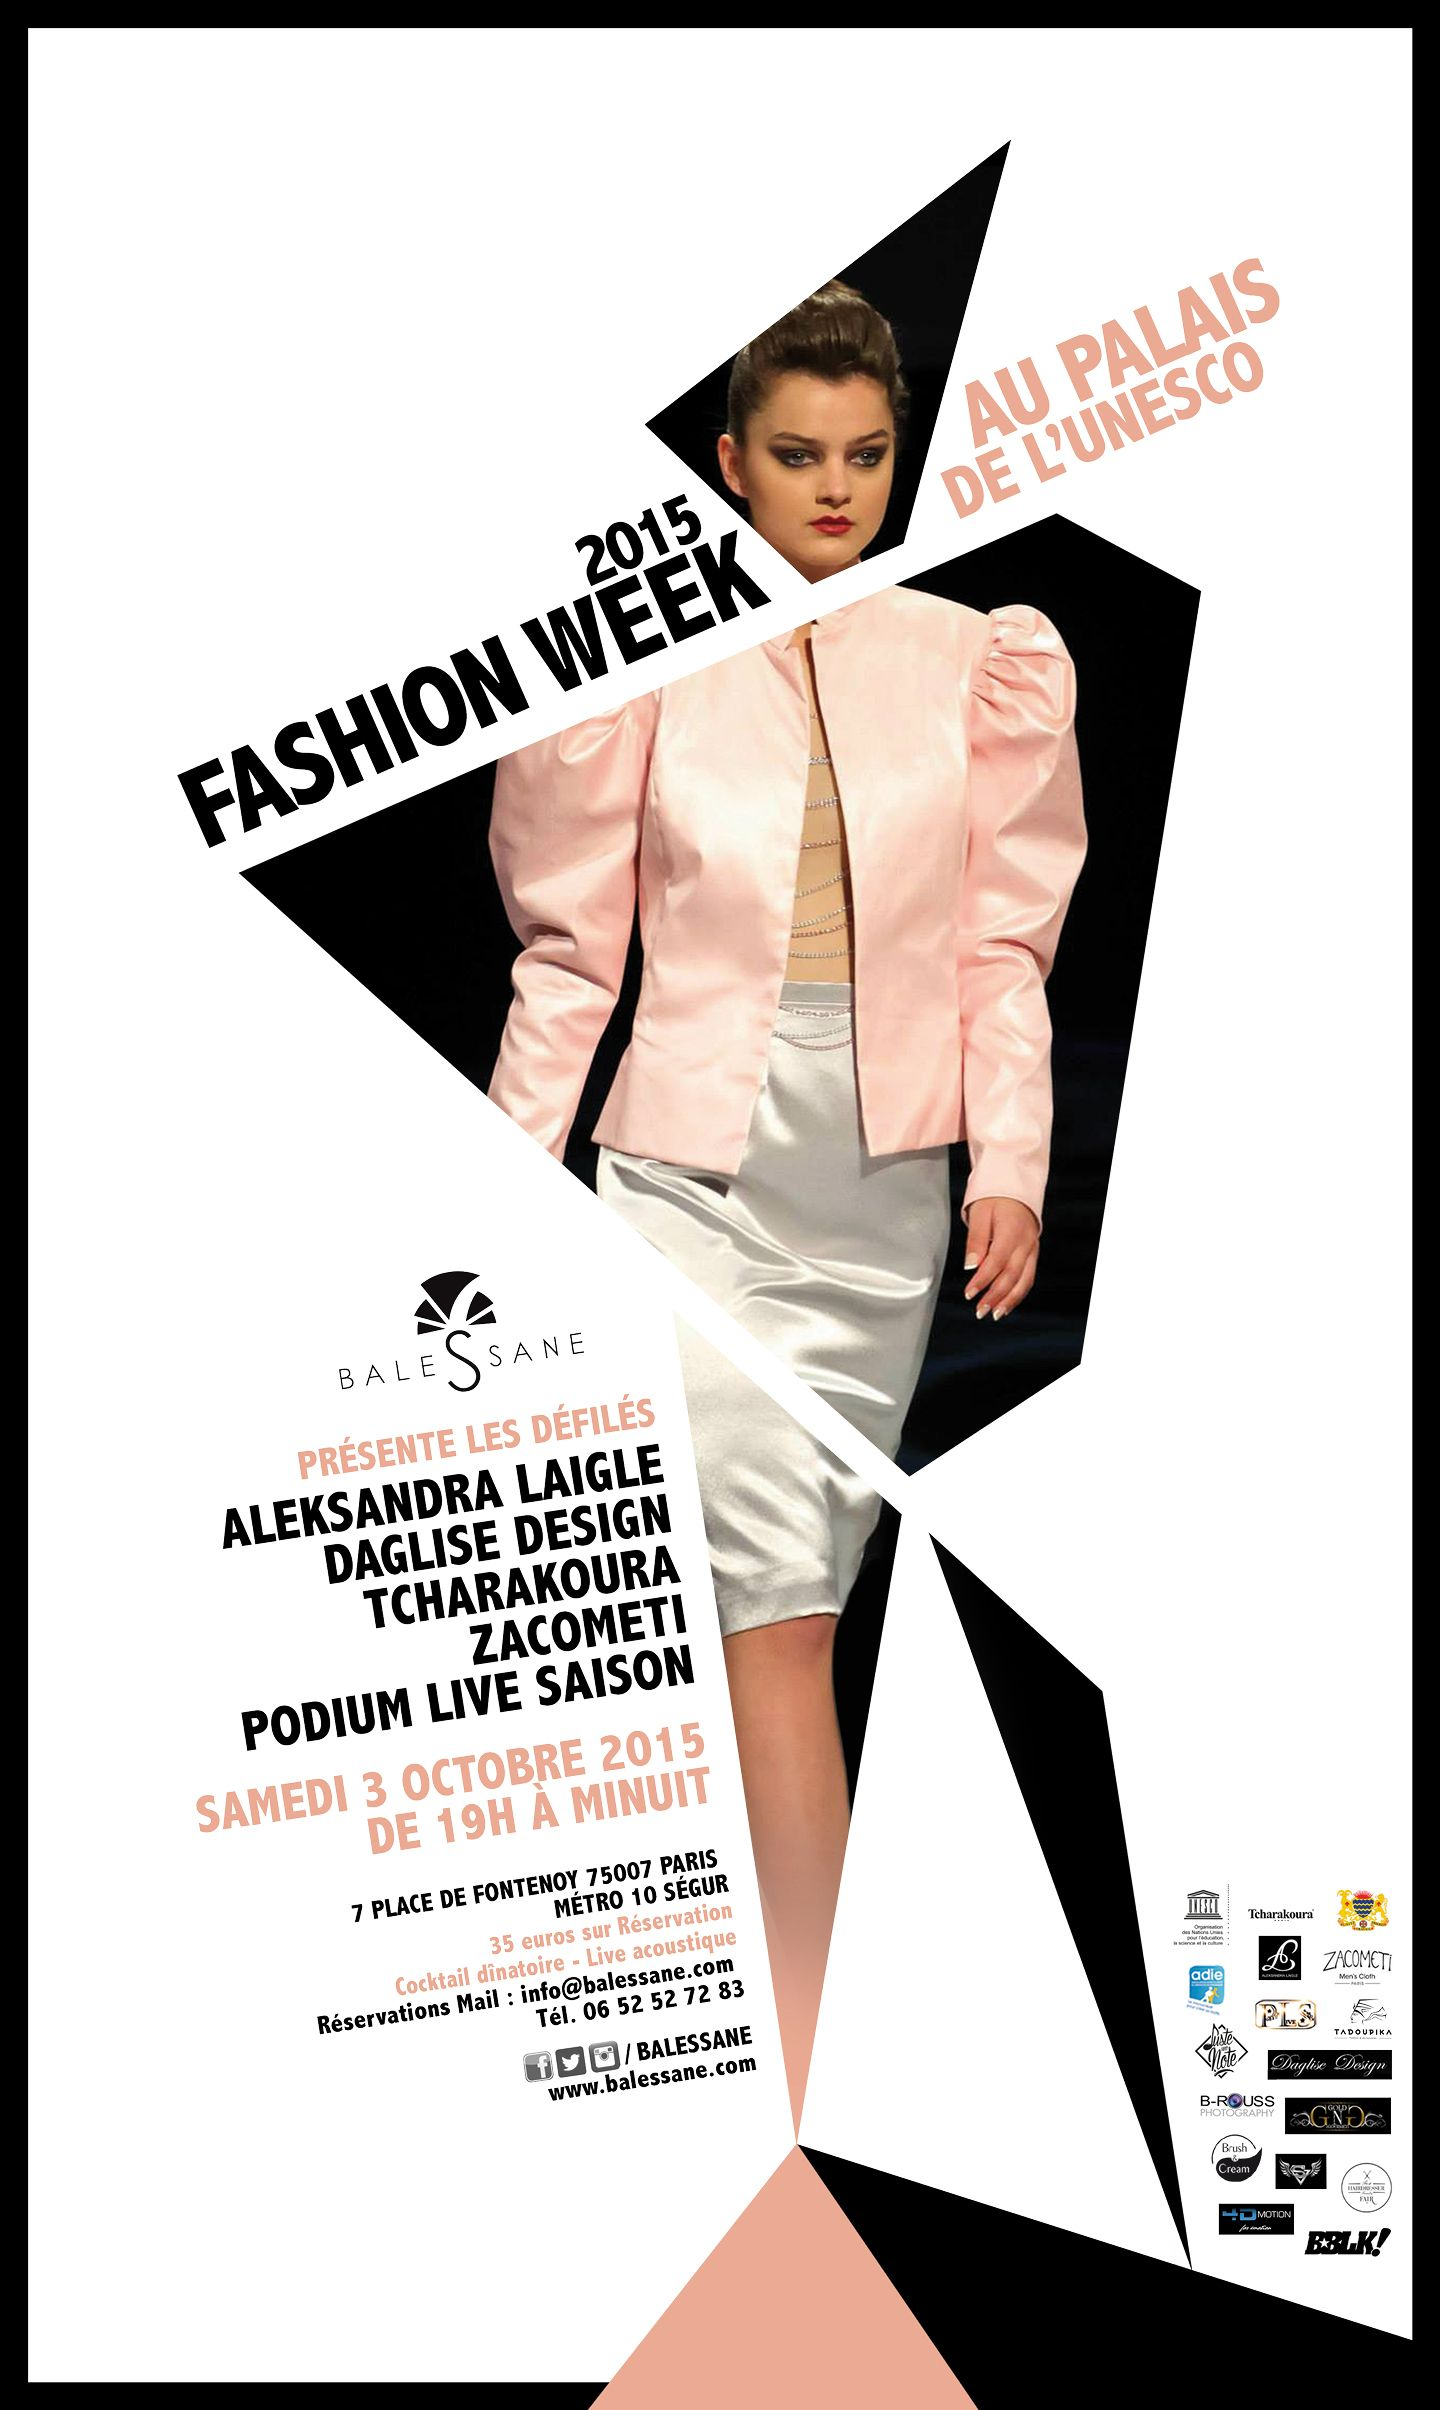 affiche de la balessane fashion week paris 2015